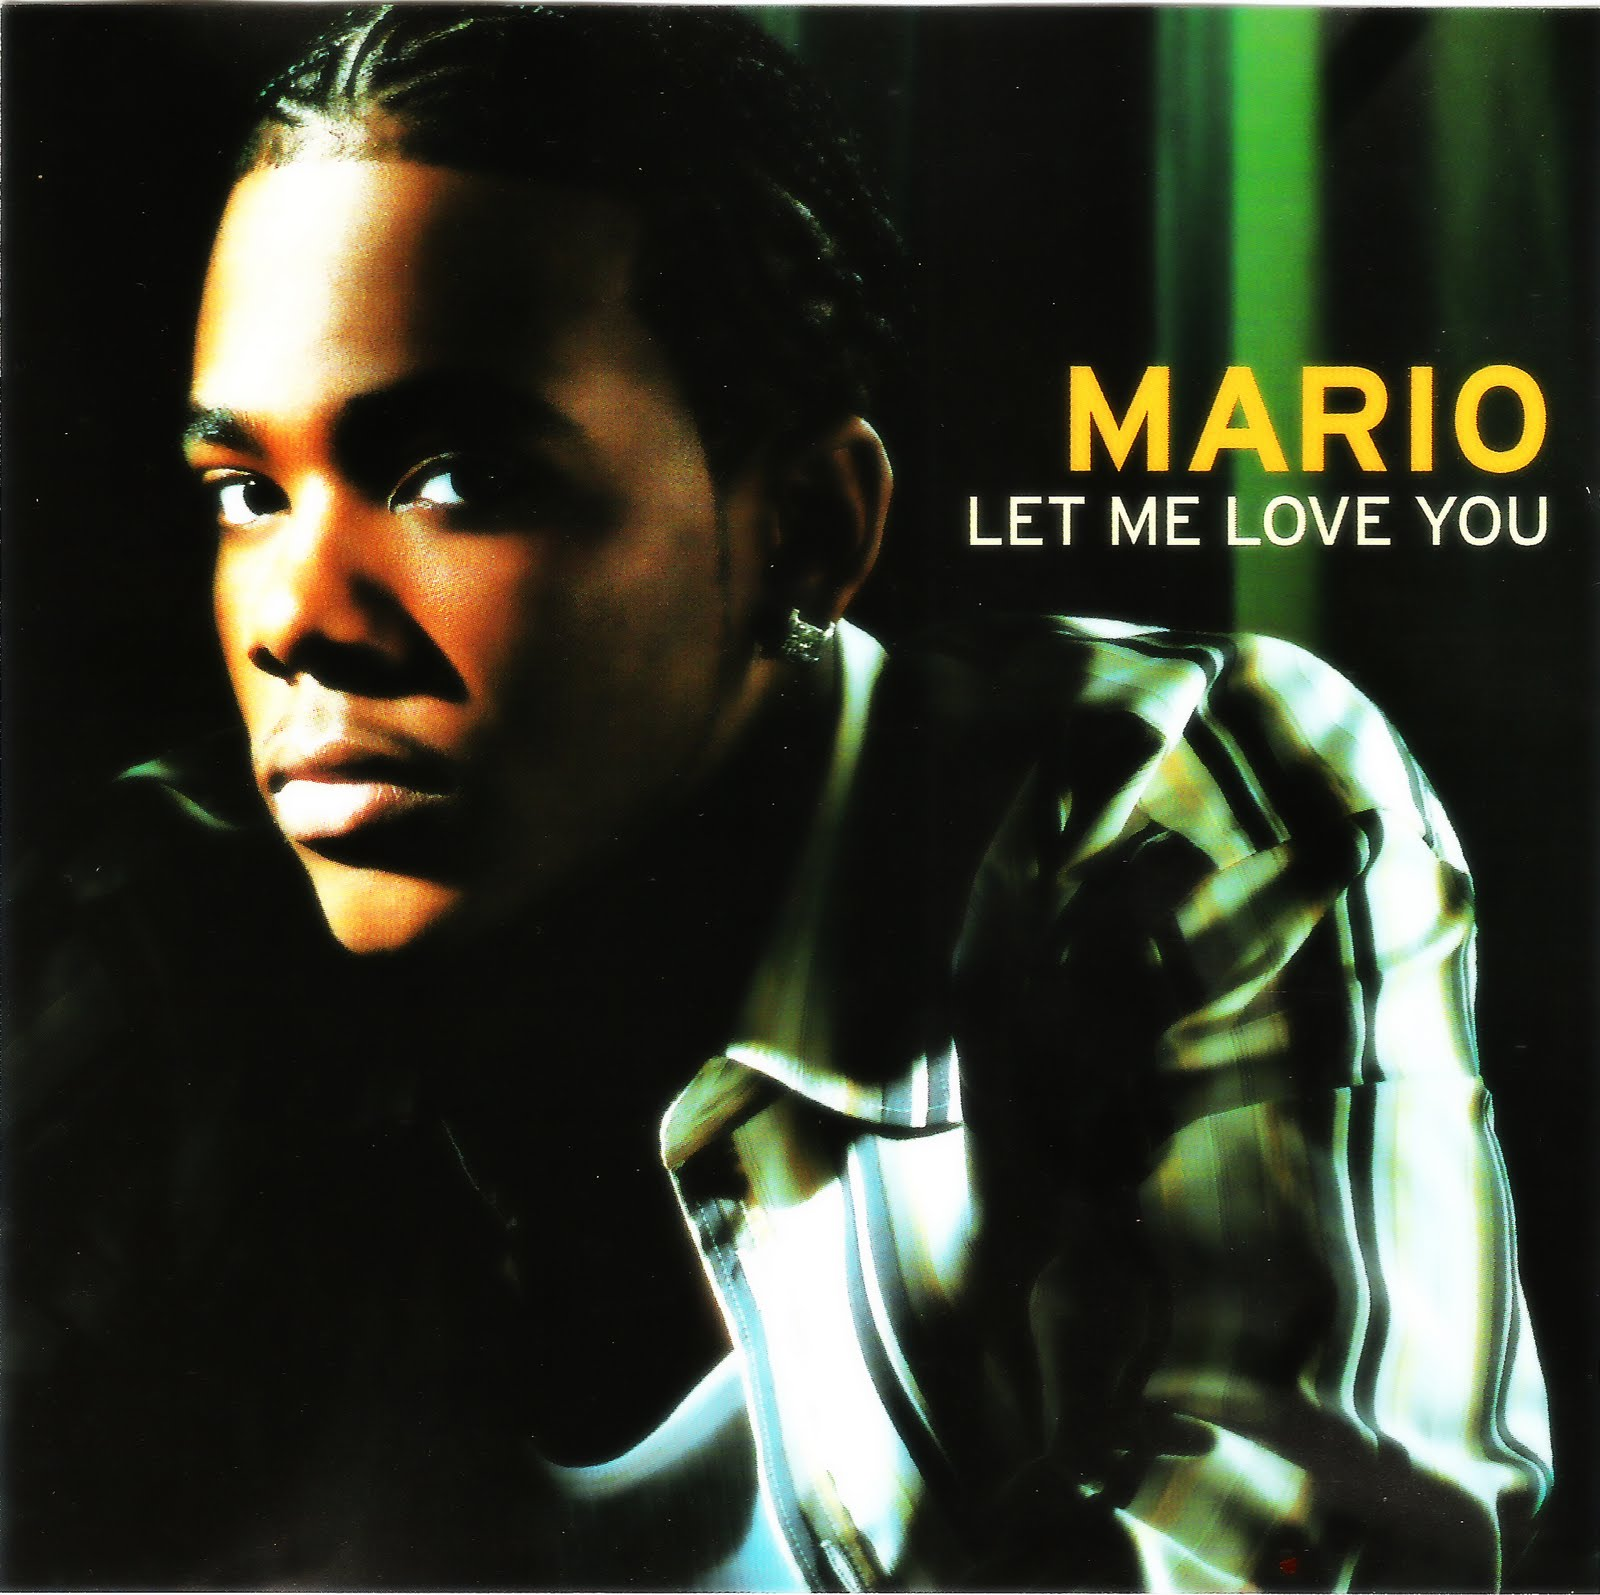 Let Me Love You Mp3 Song Download: Mario Let Me Love You